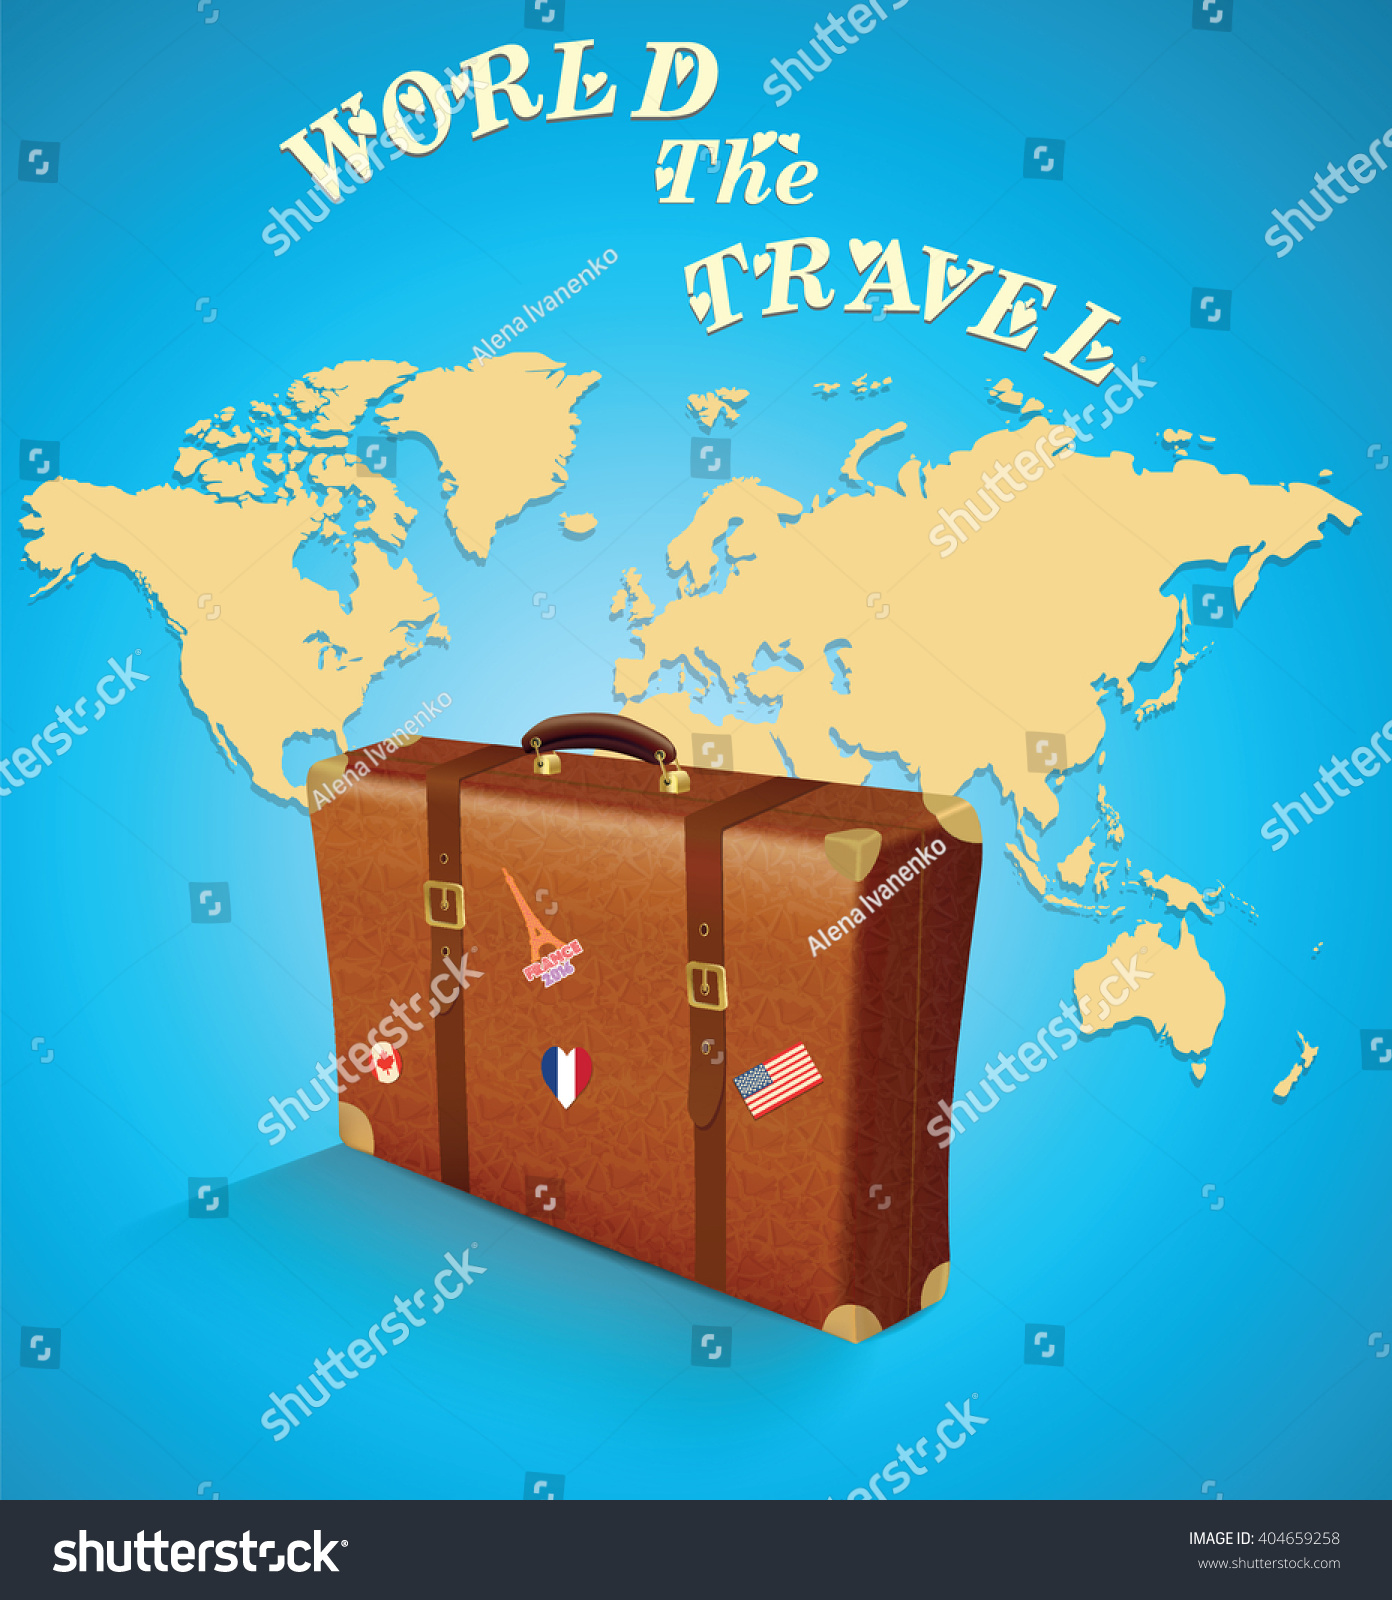 World map suitcase on blue background stock vector 404659258 world map and a suitcase on a blue background vector illustration gumiabroncs Images